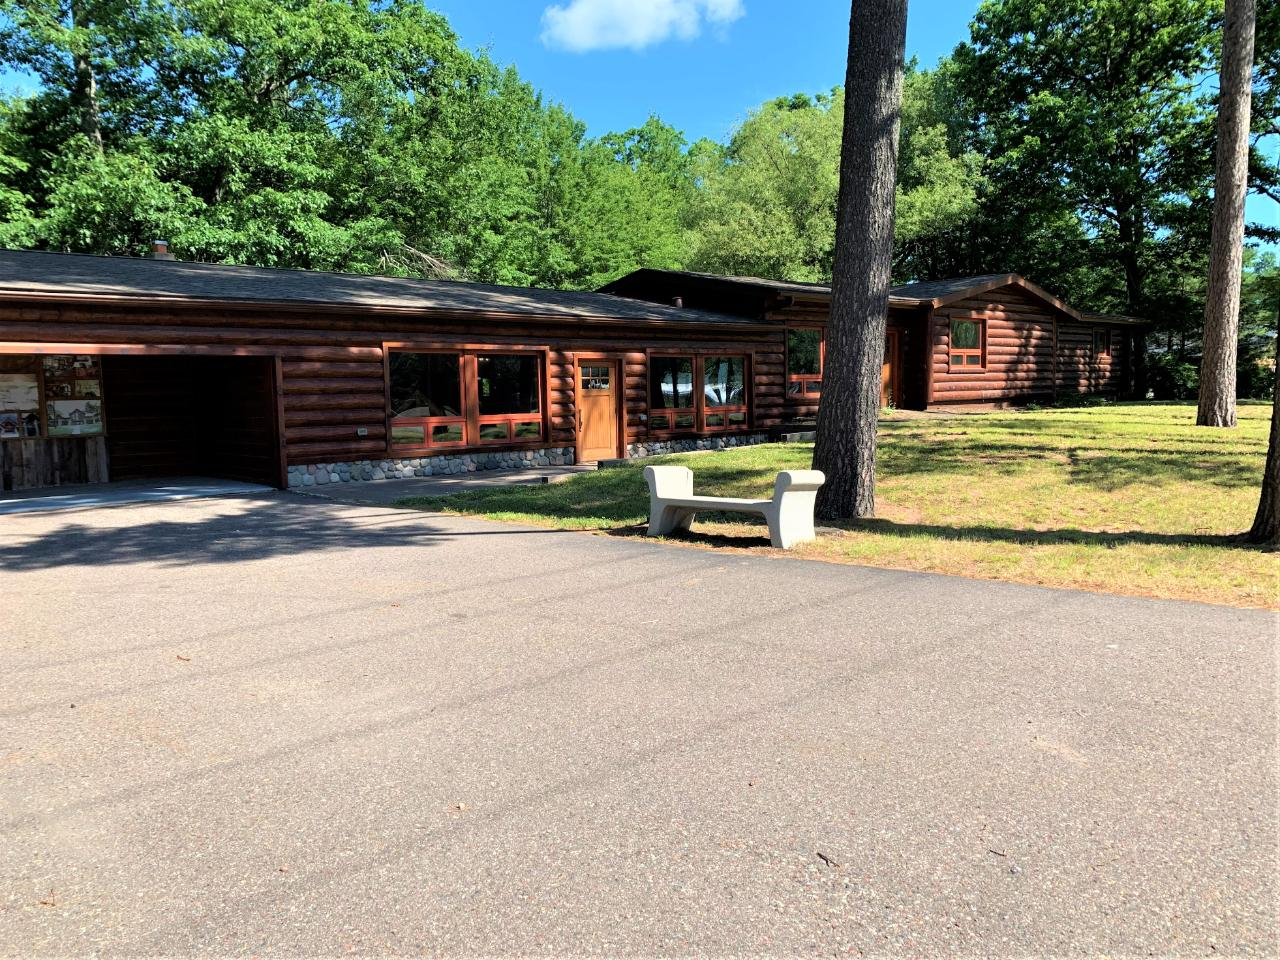 Primer commercial building and location. Well maintained commercial building with excellent curb appeal. This building offers over 5,000sqft to utilize. The outside is complete with log siding, landscaped and easy access with sidewalks. The large showroom is 38 X 30 with an additional 24 X 20 show room, complete with vaulted ceilings. Multiple large offices throughout and an unfinished walkout basement with a full kitchen. 42 X 14 attached garage area and 20 X 20 storage attached to the garage and large showroom. With easy access and over 200 ft of frontage on US Hwy 51 this property has endless options.